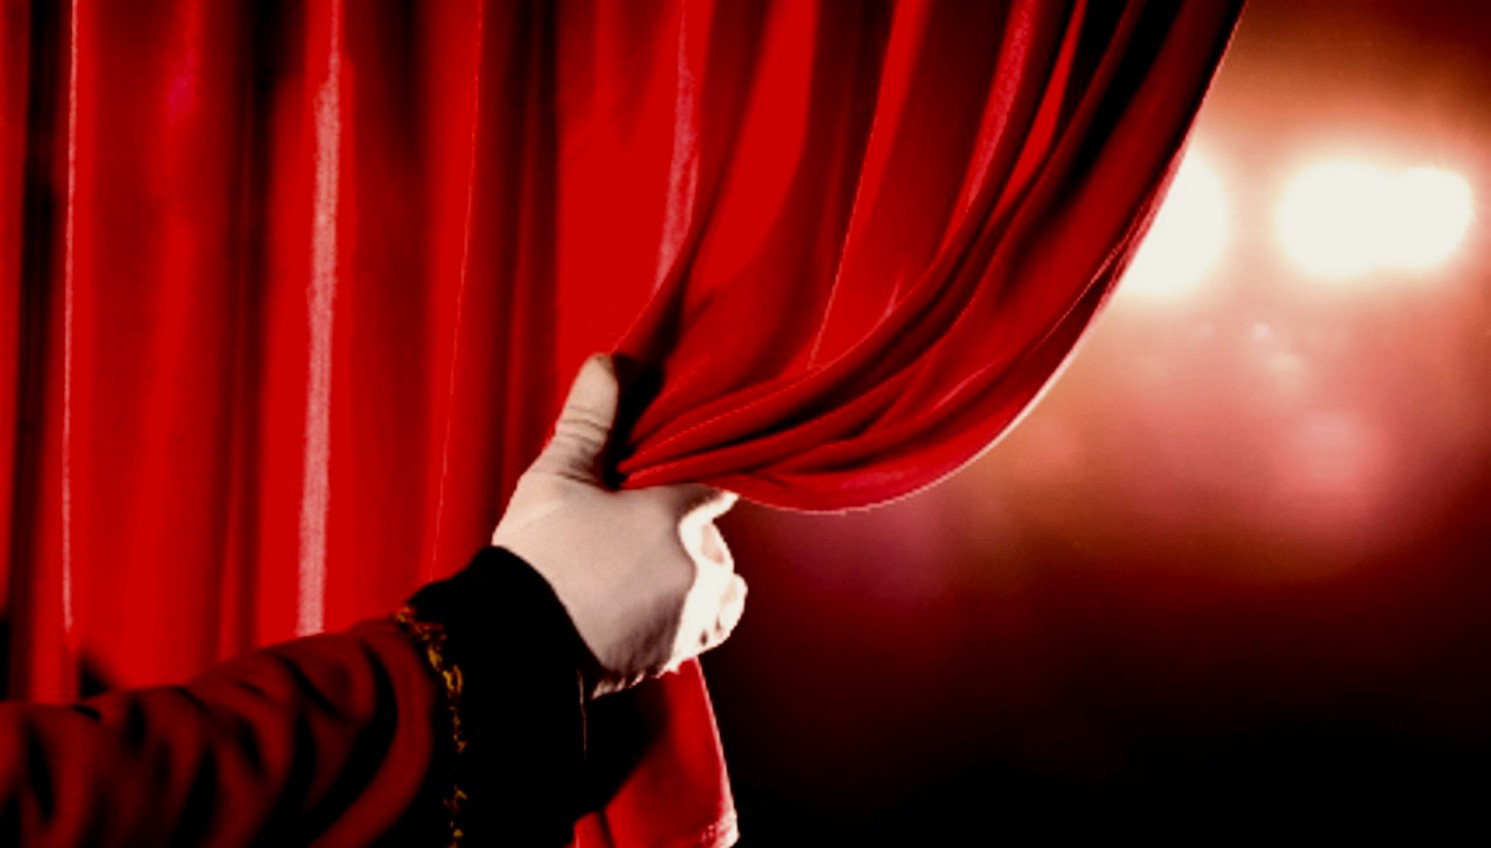 (view Original). The Curtain Is Drawn.